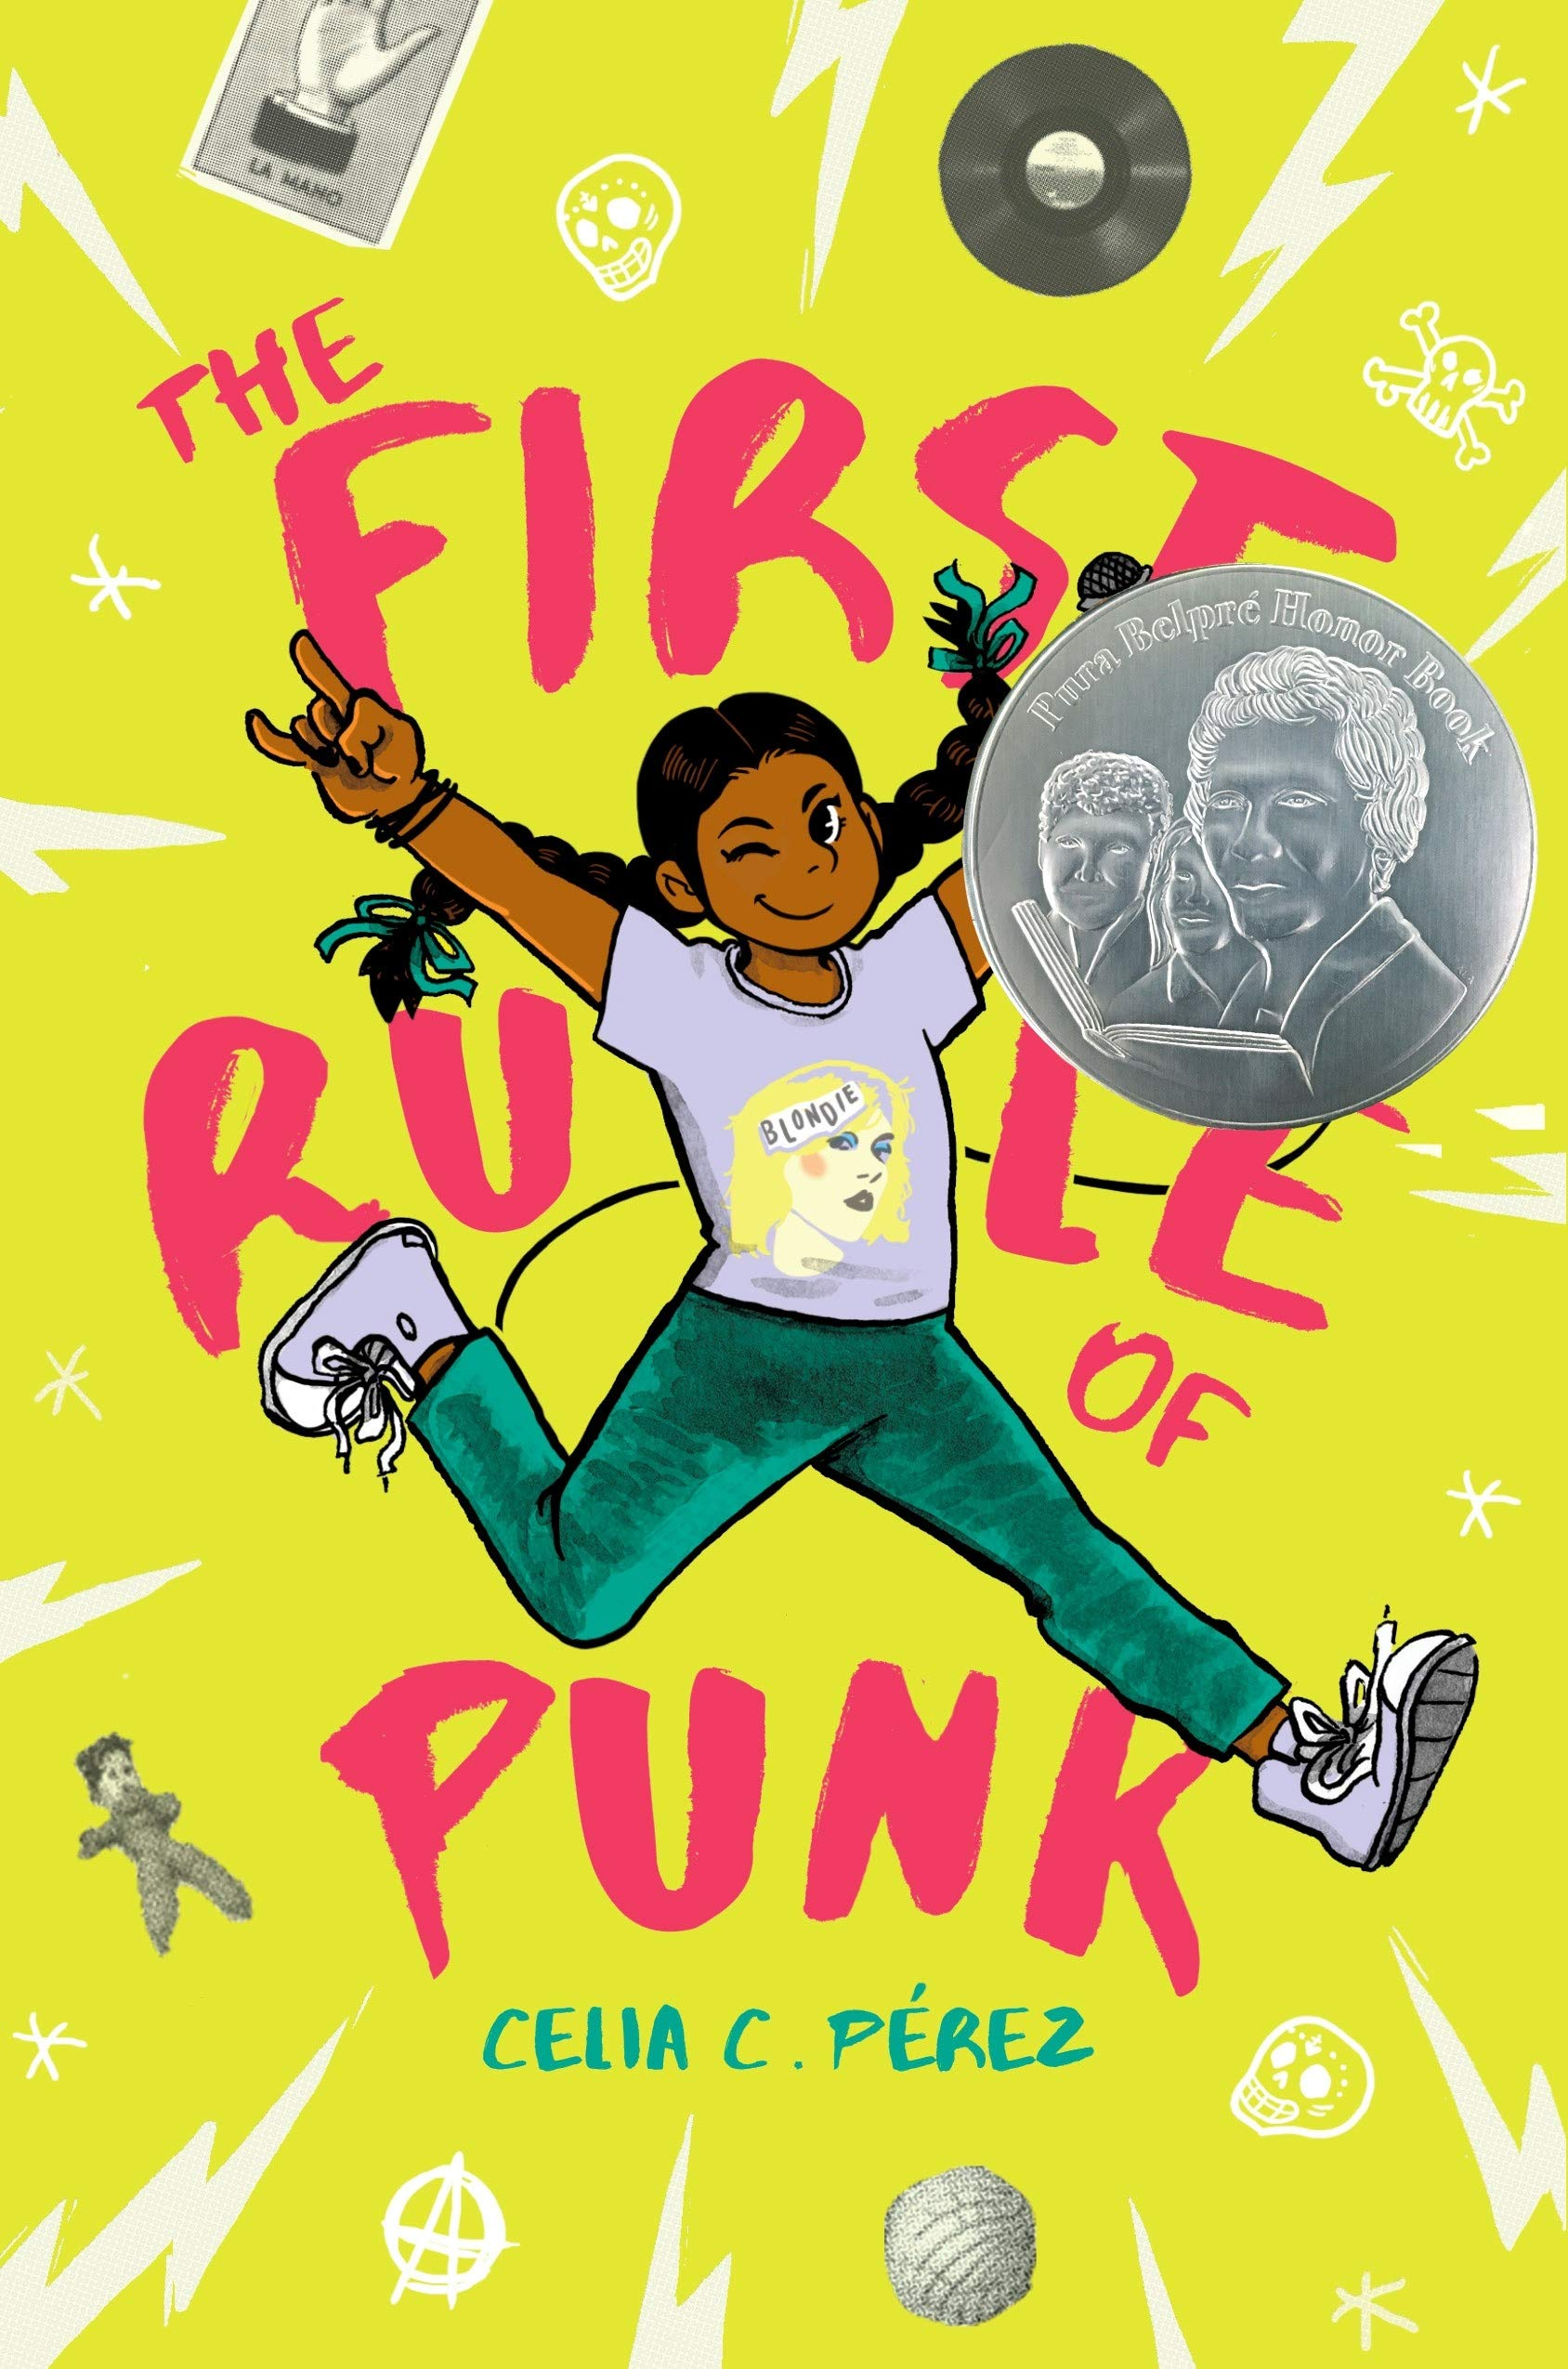 ace0585afa1afd The First Rule of Punk  Celia C. Pérez  9780425290422  Amazon.com  Books